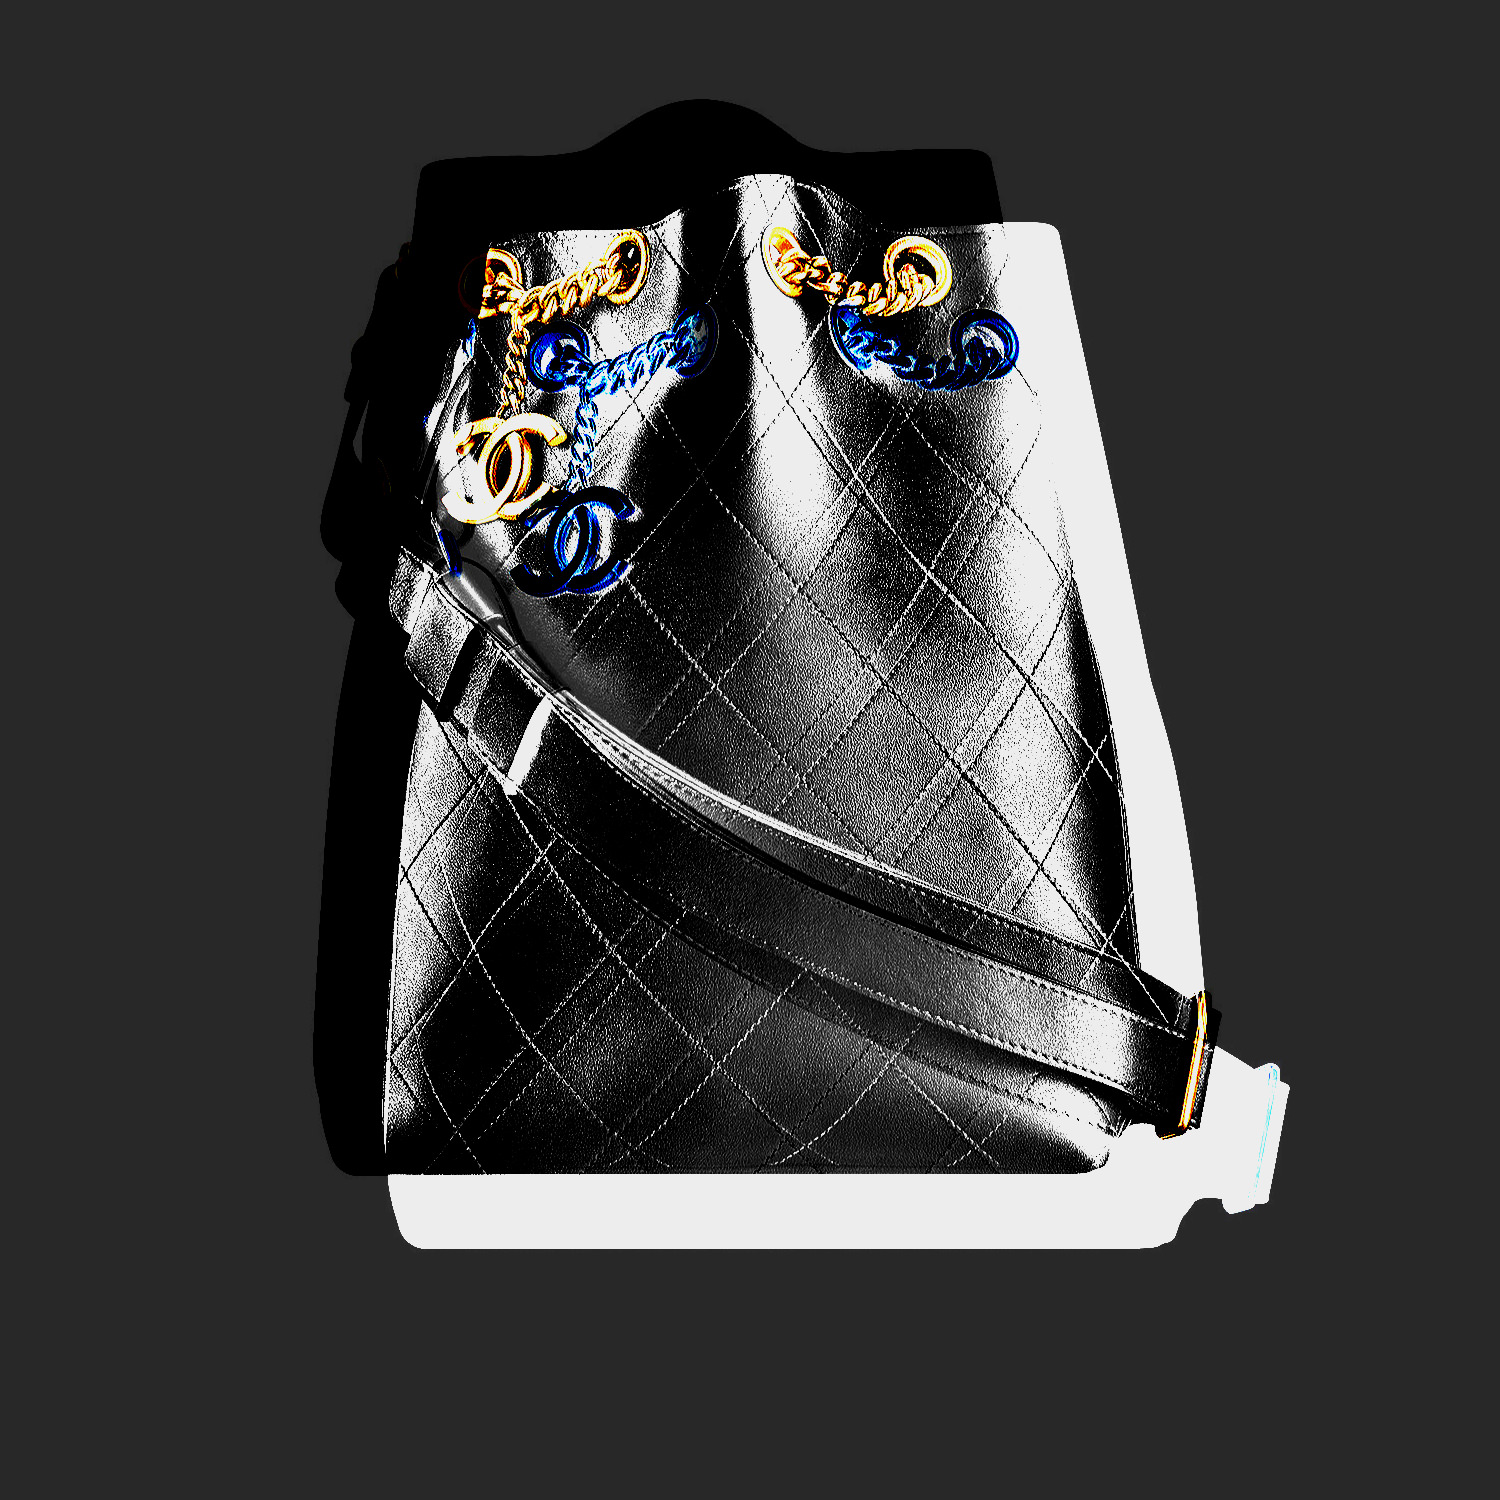 Fetish object of the week:  the Chanel bag